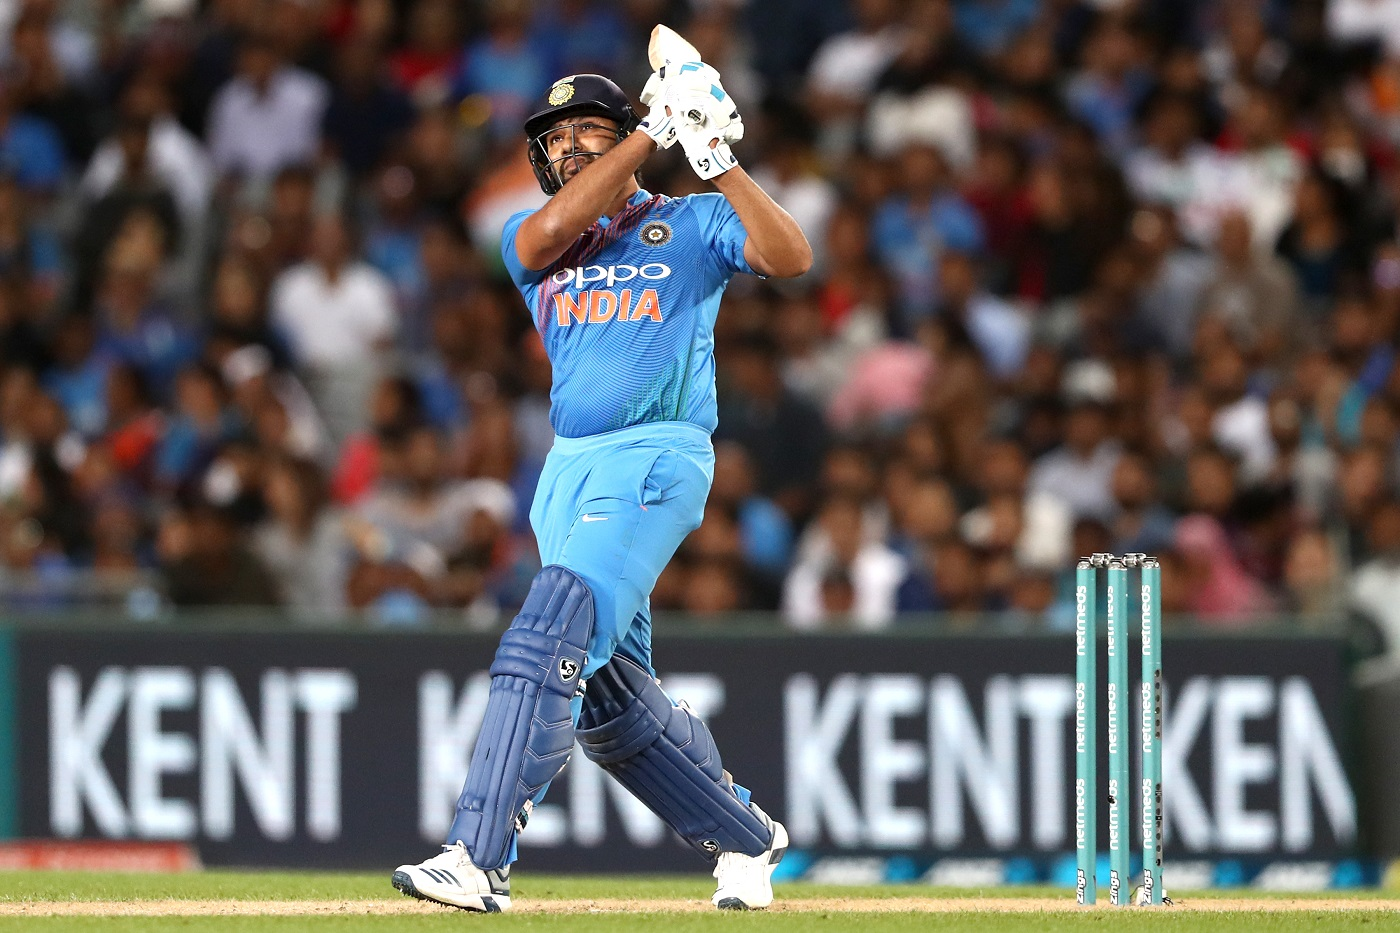 AUCKLAND, NEW ZEALAND - FEBRUARY 08: Rohit Sharma of India bats during game two of the International T20 Series between the New Zealand Black Caps and India at Eden Park on February 08, 2019 in Auckland, New Zealand. (Photo by Hannah Peters/Getty Images)